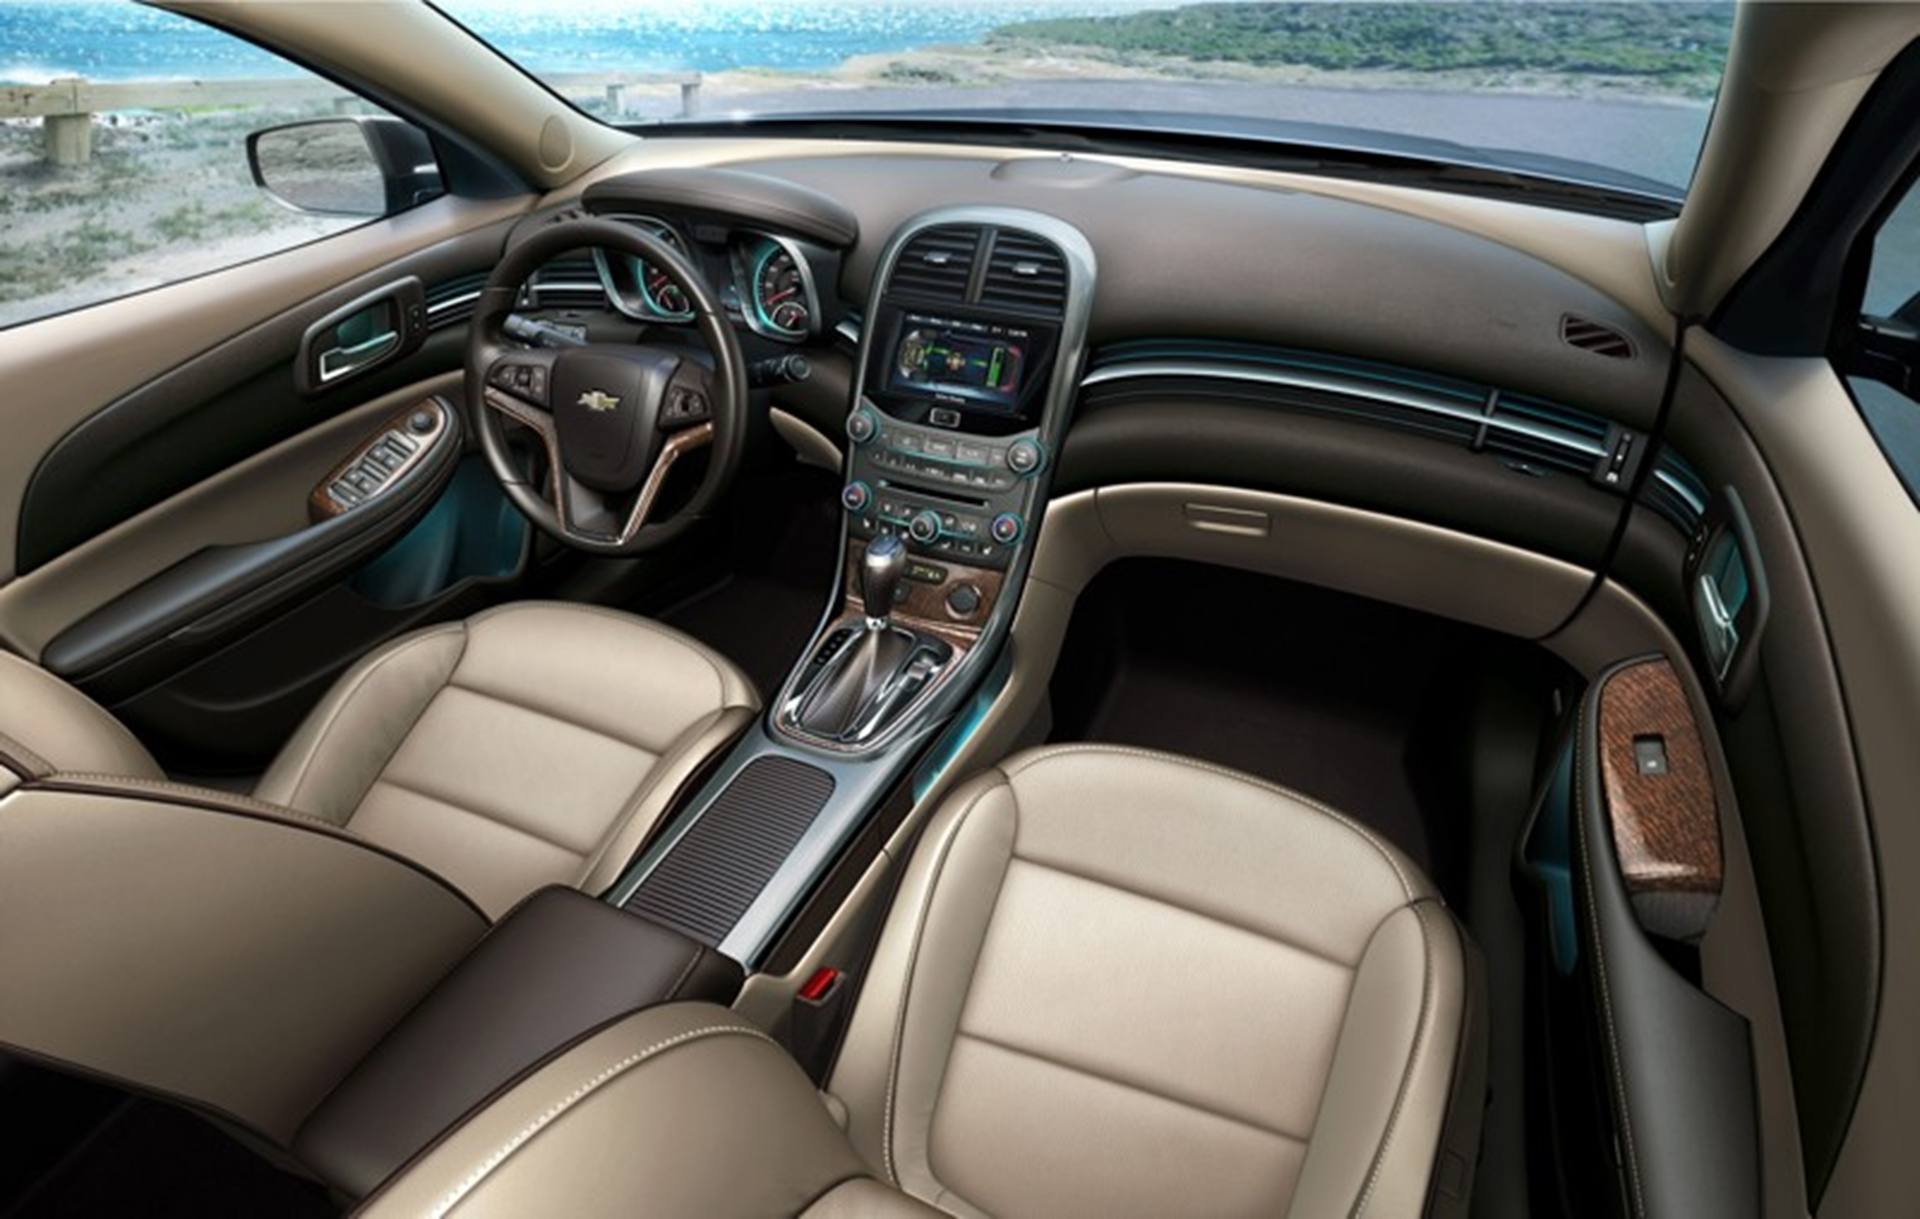 Chevrolet Malibu Interior Delivers A Touch Of Luxury